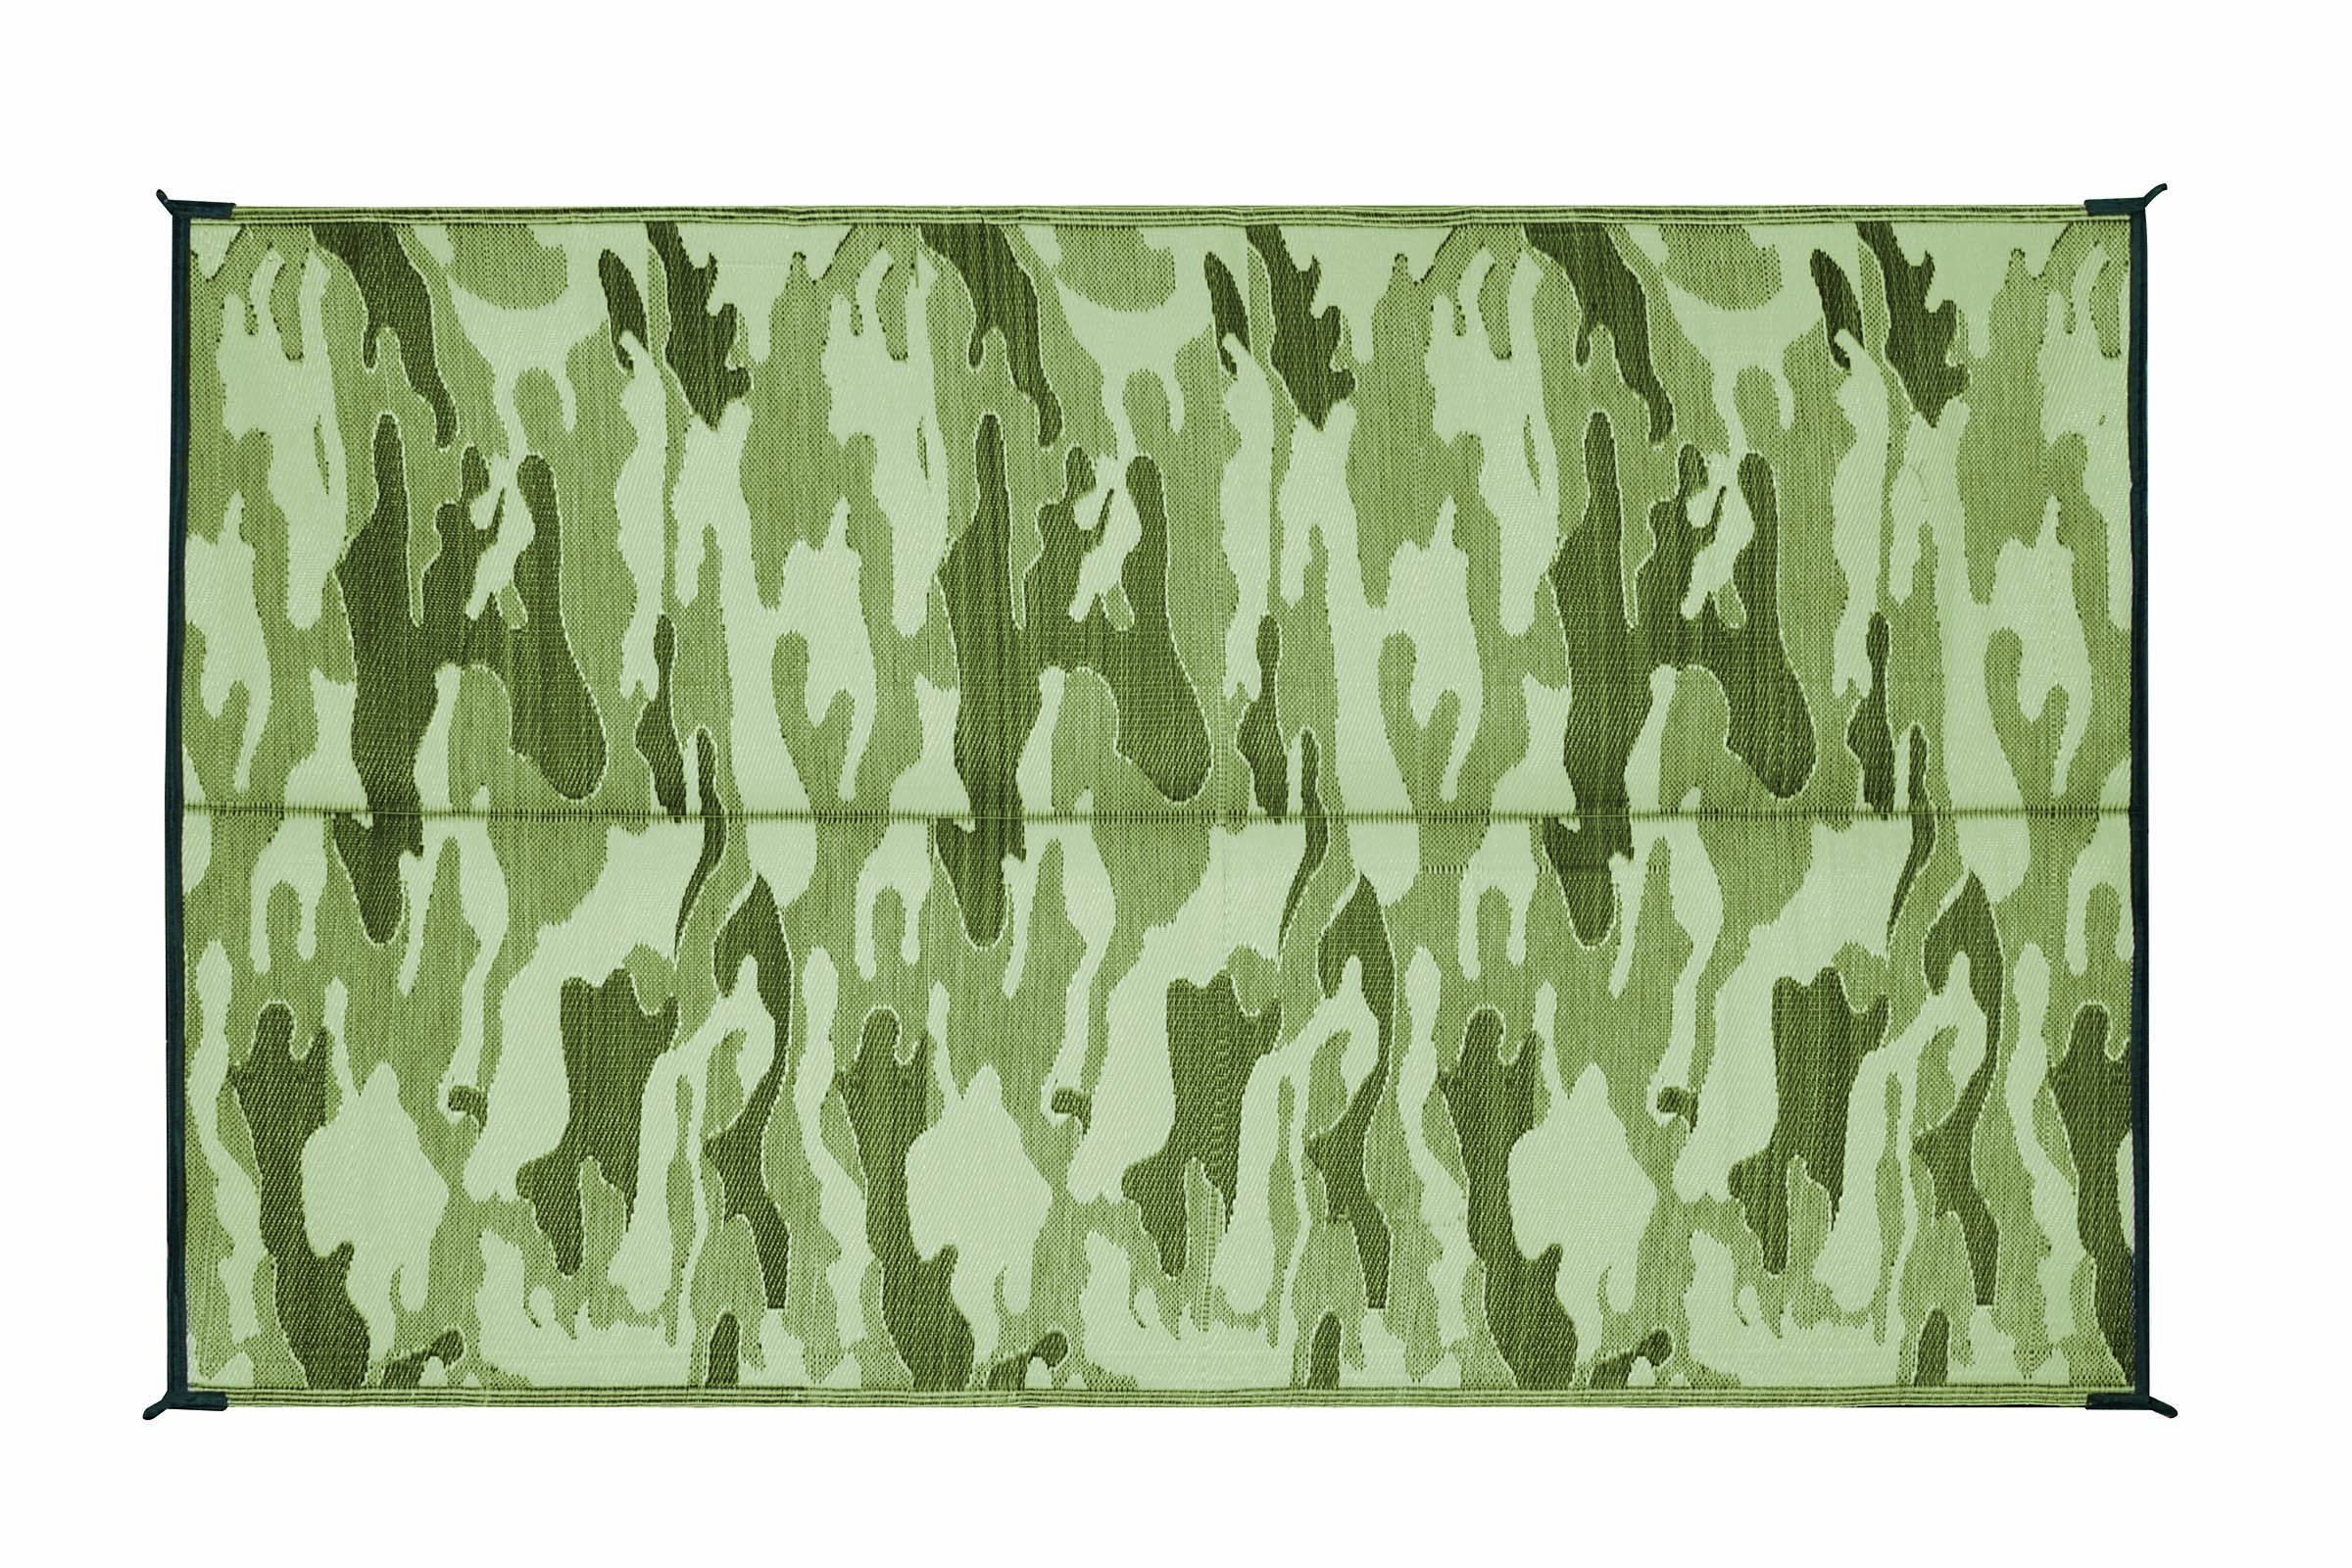 Camco Large Reversible Outdoor Patio Mat - Mold and Mildew Resistant, Easy to Clean, Perfect for Picnics, Cookouts, Camping, and The Beach (9' x 12', Camouflage Design) (42825) by Camco